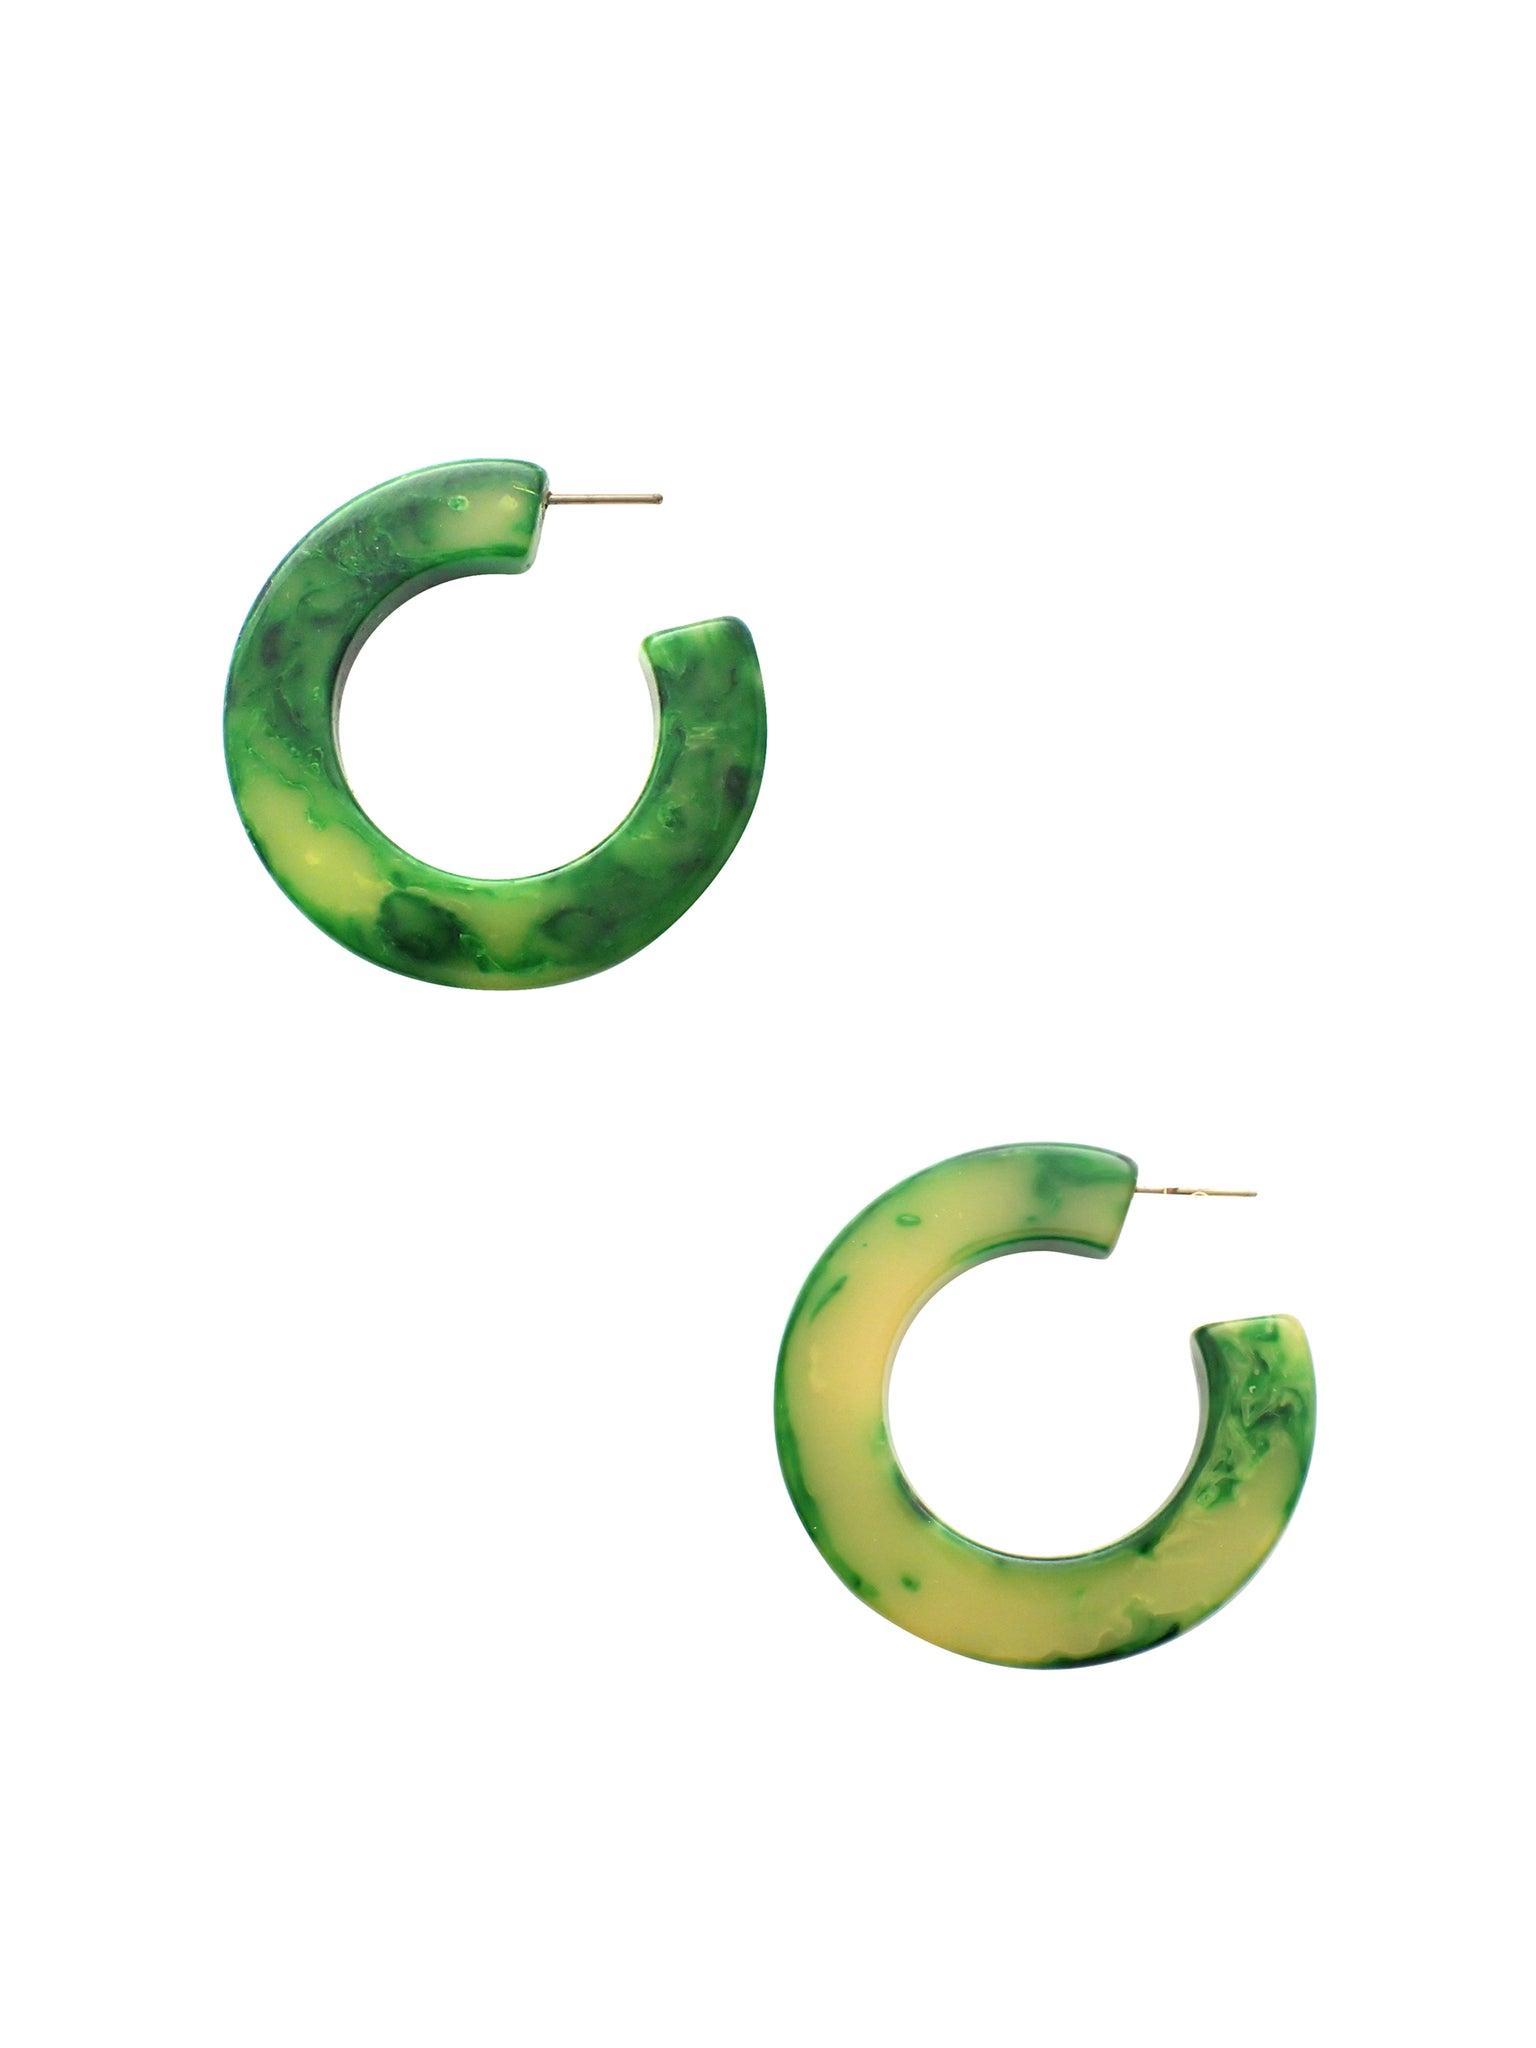 Green Marbled Bakelite Hoops / Bakelite